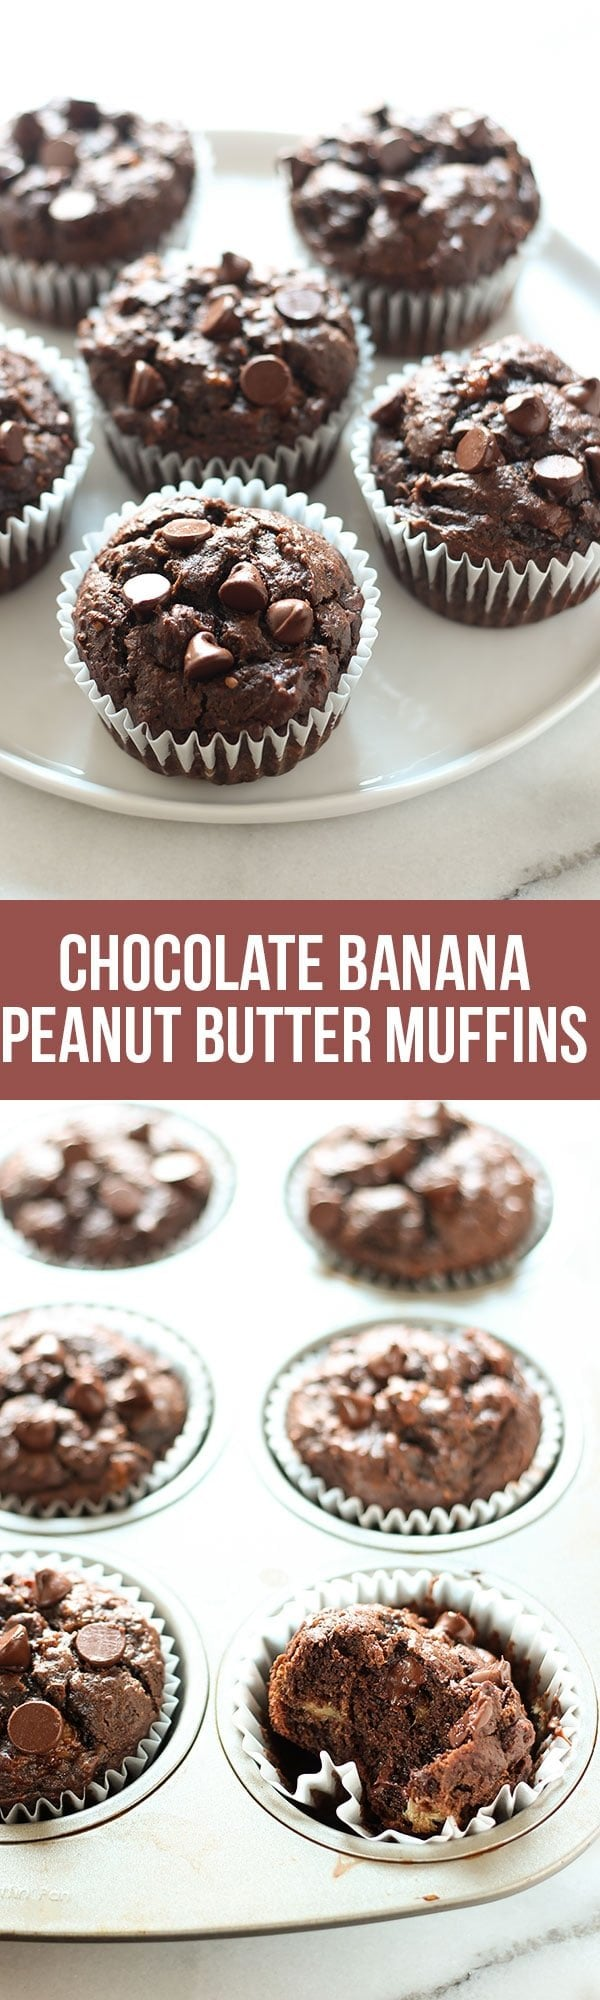 Chocolate Peanut Butter Banana Muffins are made healthier with whole wheat flour, no butter or oil, but tons of flavor! EASY 30 minute recipe.